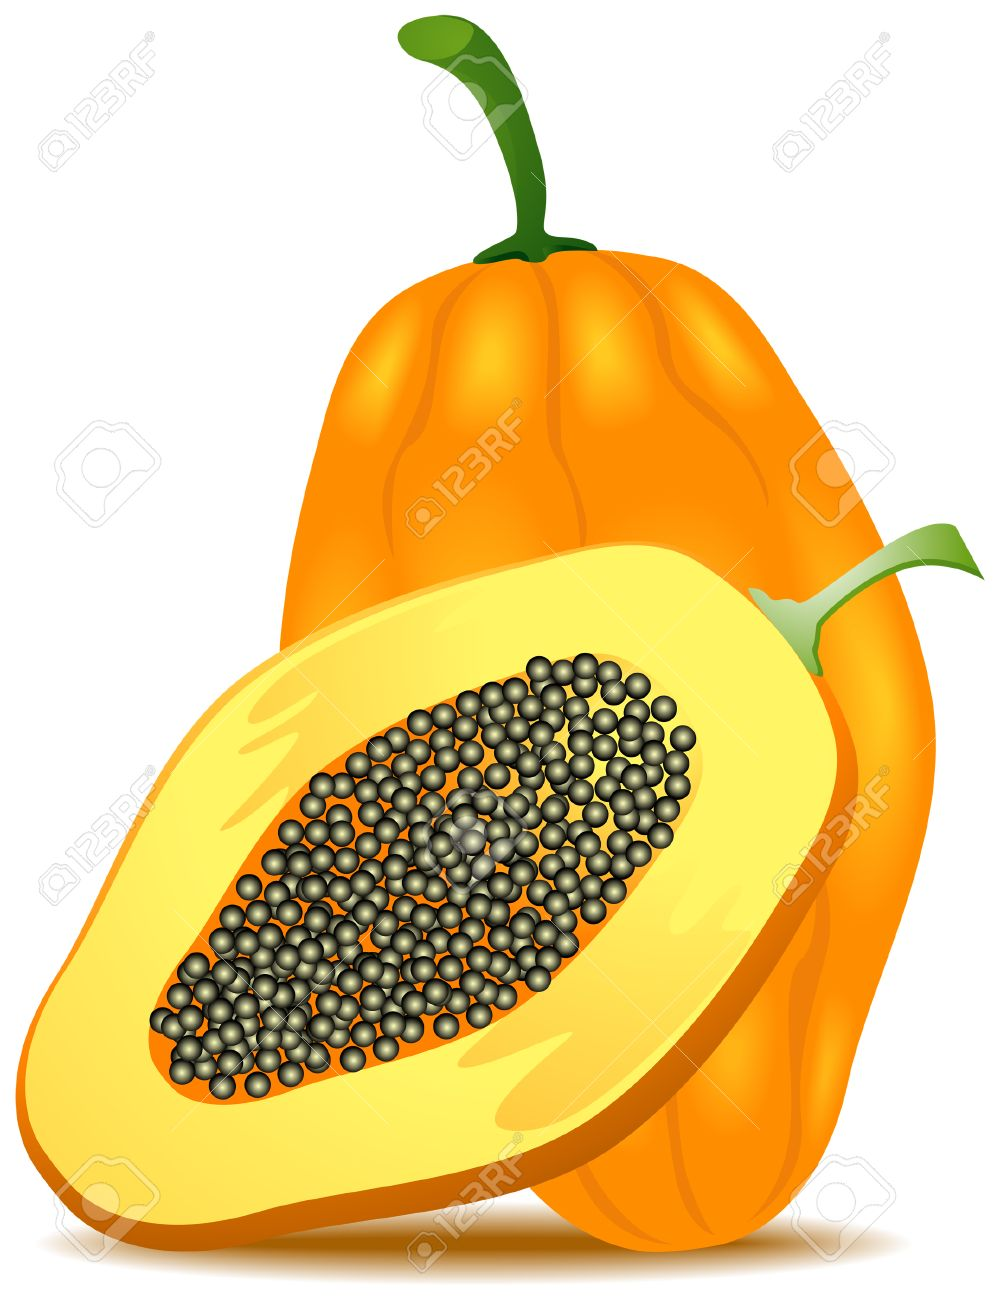 Papaya Illustration with Clipping Path Stock Vector - 3813439